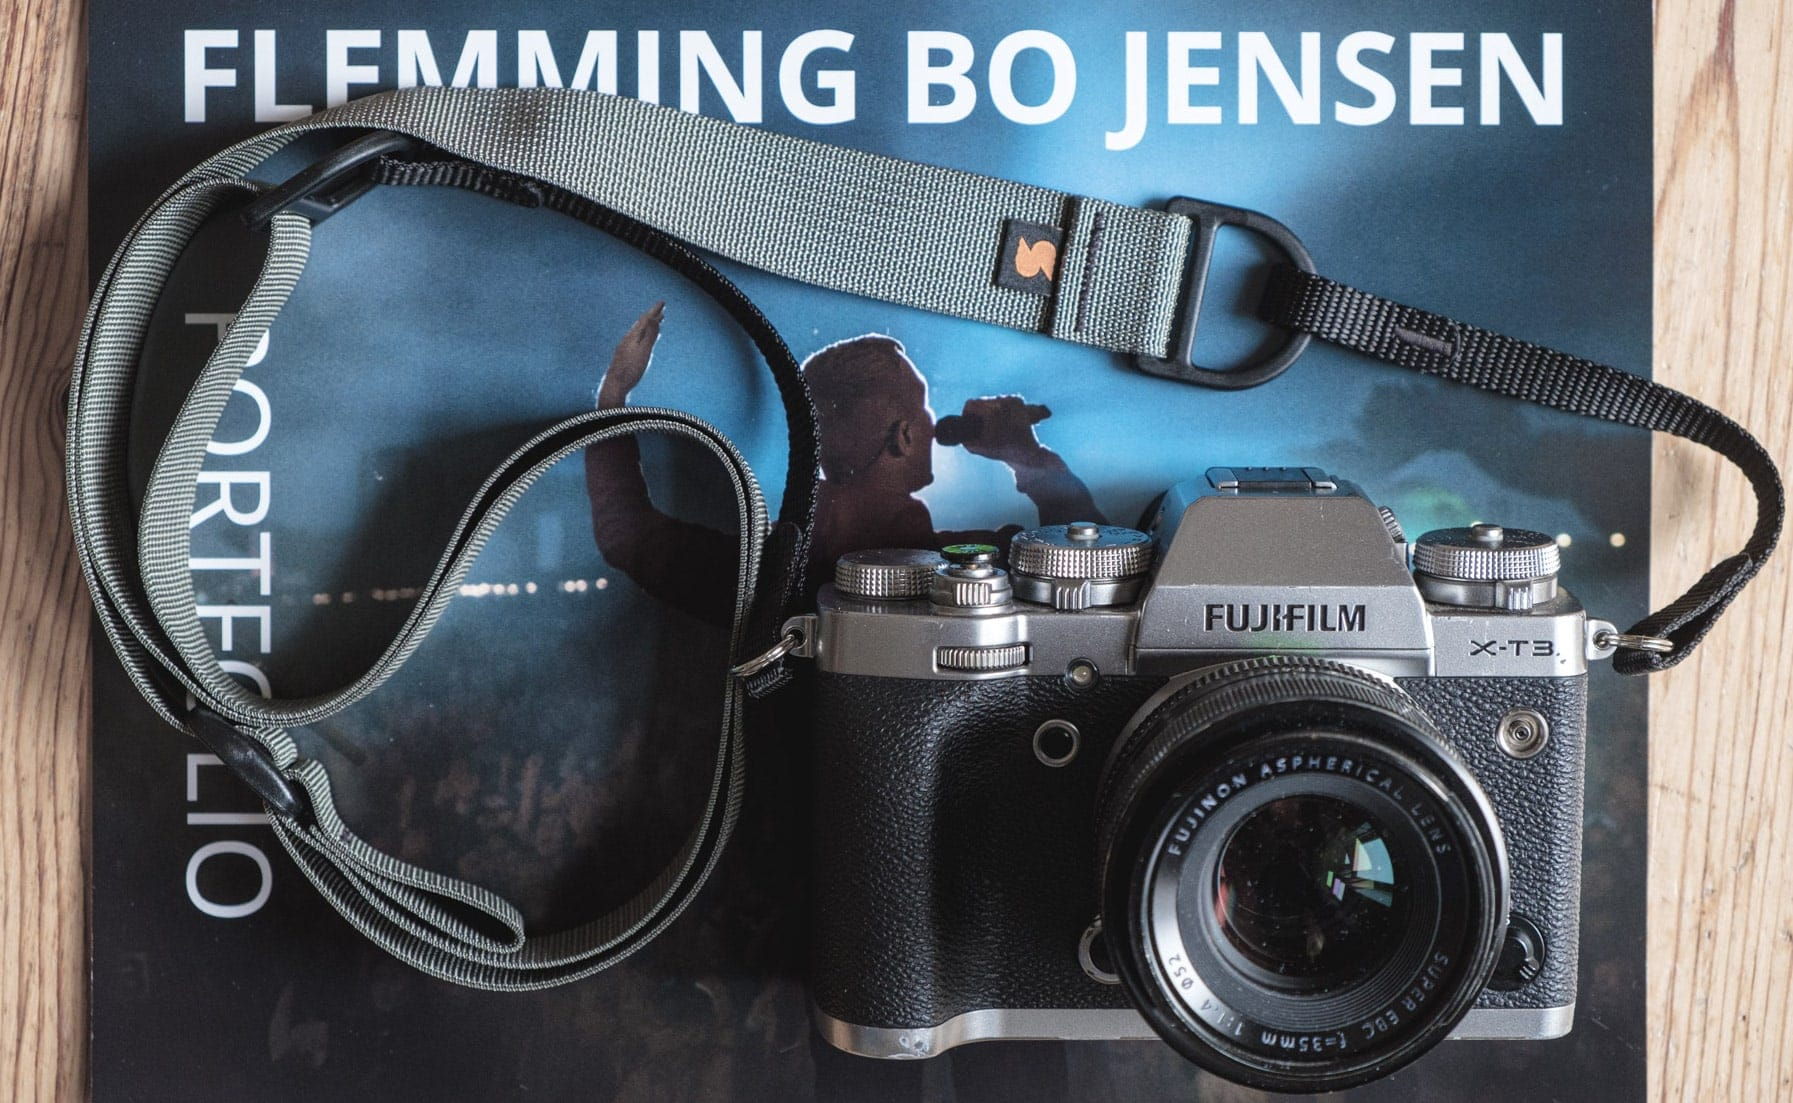 Flemming Bo Jensen reviews his Simplr F1 camera straps